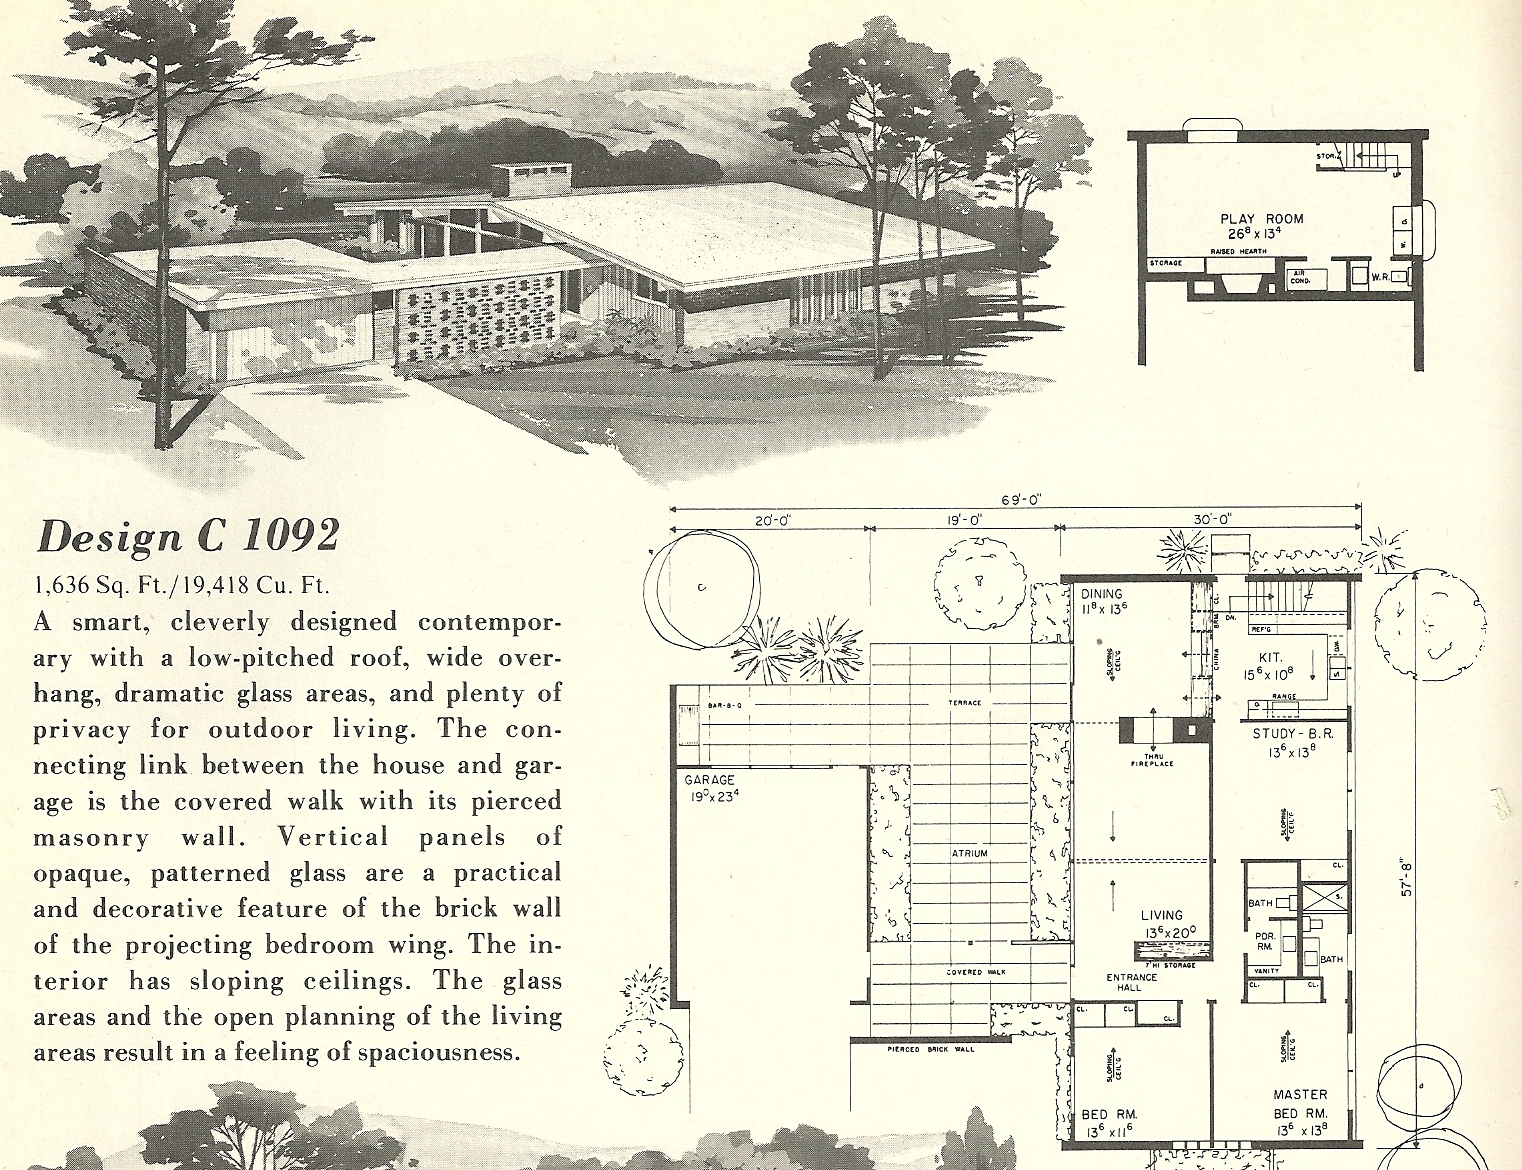 Vintage house plans 1092 antique alter ego for Mid century modern blueprints